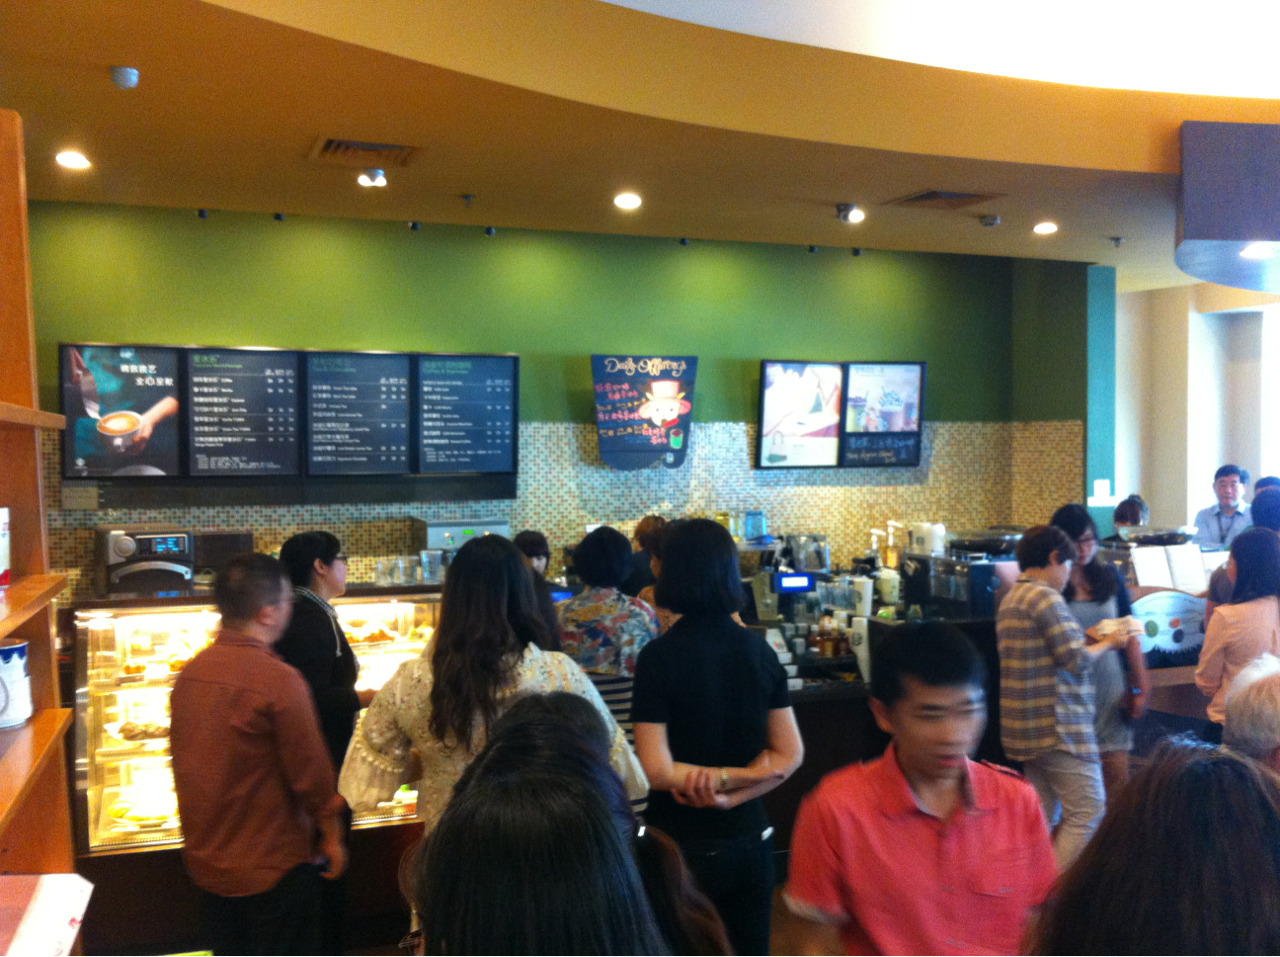 Line out the door! People go crazy for Starbucks here and at a 20% markup!